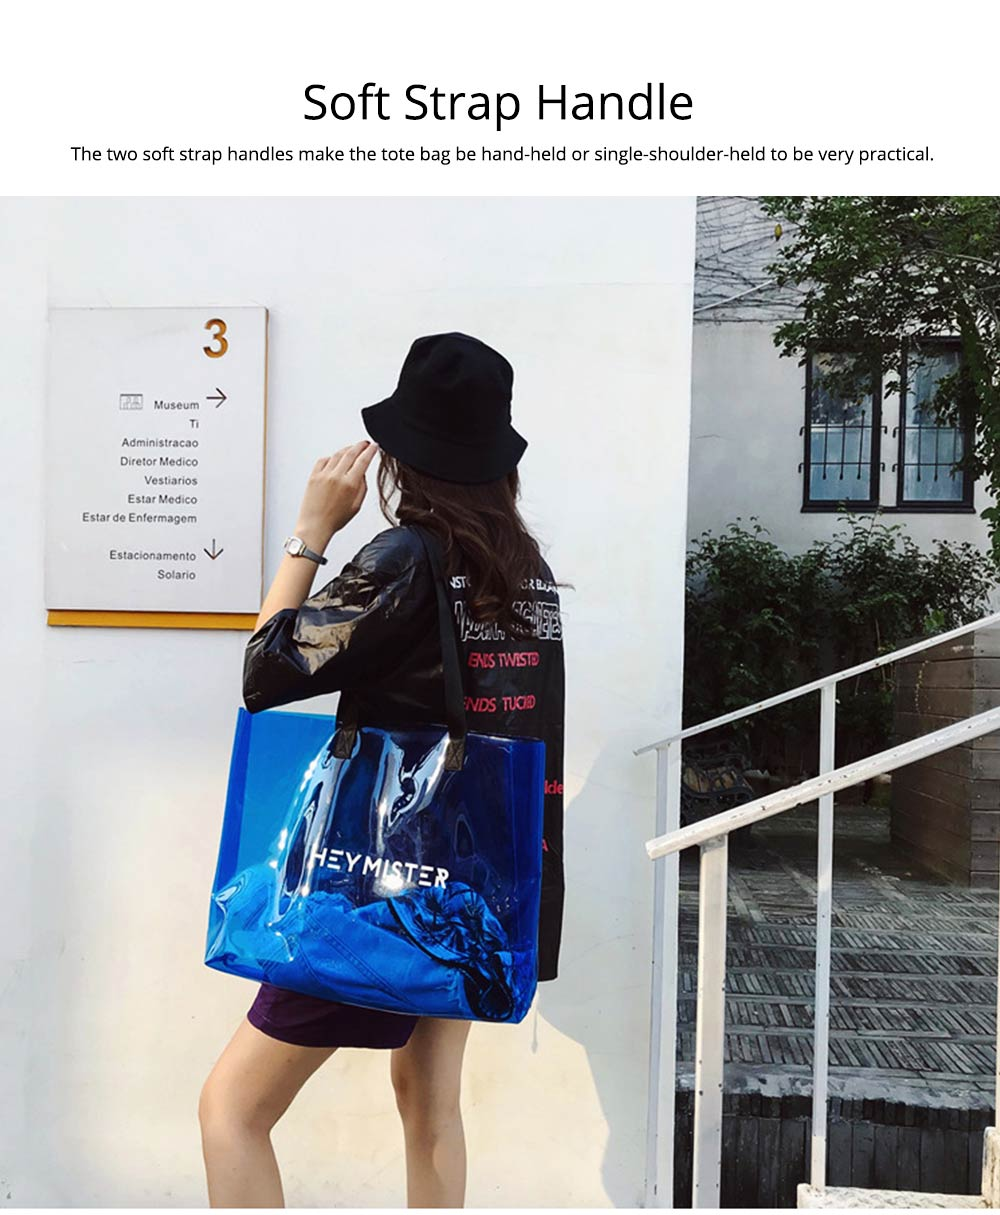 Single shoulder-held Transparent Tote Bag for Women, Fashionable Casual Style Beach Bag 2019 Summer Use 4